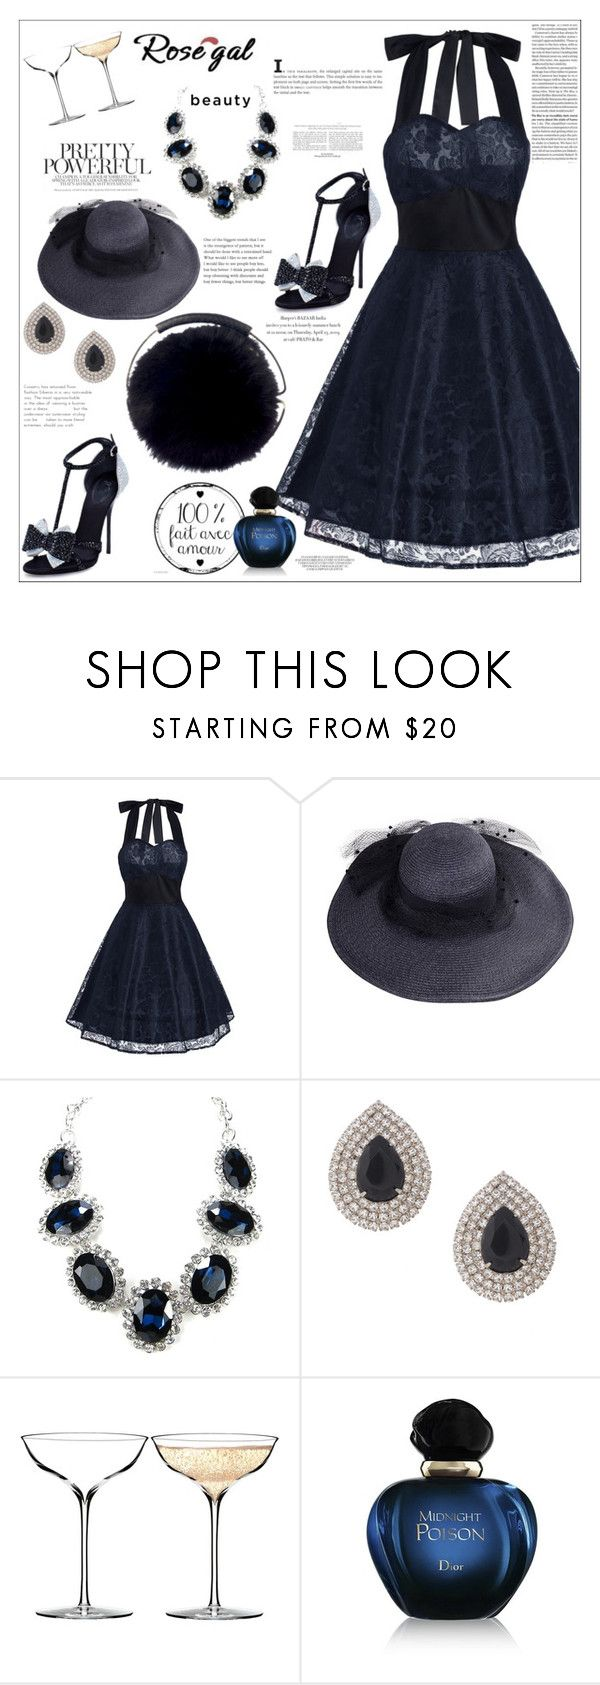 """""""Robe évasée en cristal de dentelle vintage  Https://www.polyvore.com/vintage_lace_panel_contrast_flare/collection?id=6781700"""" by frane-x ❤ liked on Polyvore featuring Giuseppe Zanotti, Jimmy Choo, Susan Caplan Vintage, Waterford, Christian Dior and vintage"""